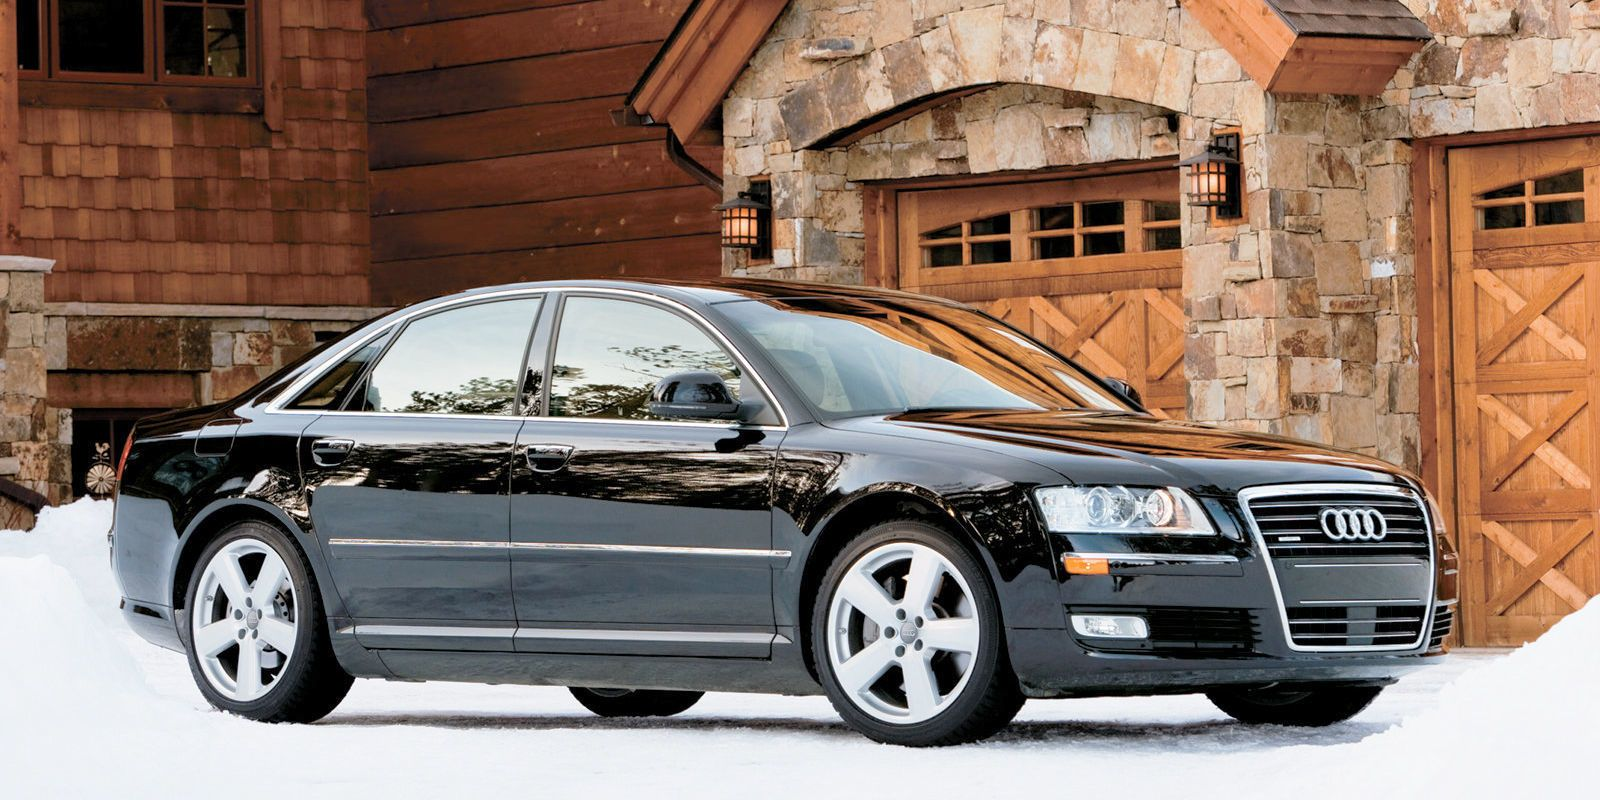 20 of the best cheap used luxury cars you can buy cars rh pinterest com